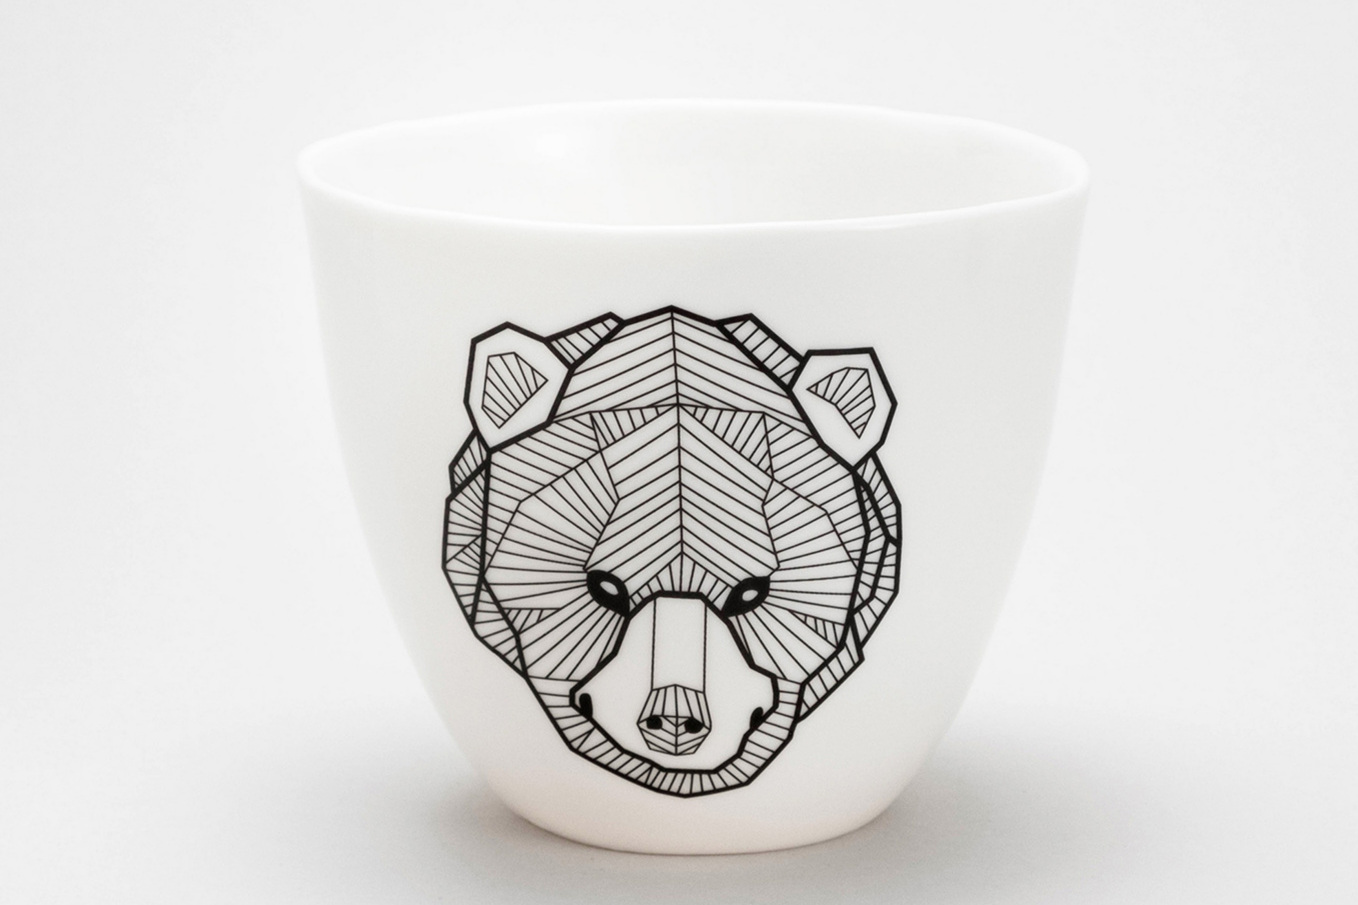 Berlin Bear ceramic black tattoo geometric fine lines handamde porcelain maxi mug verly large ramen bowl Antikapratika.jpg